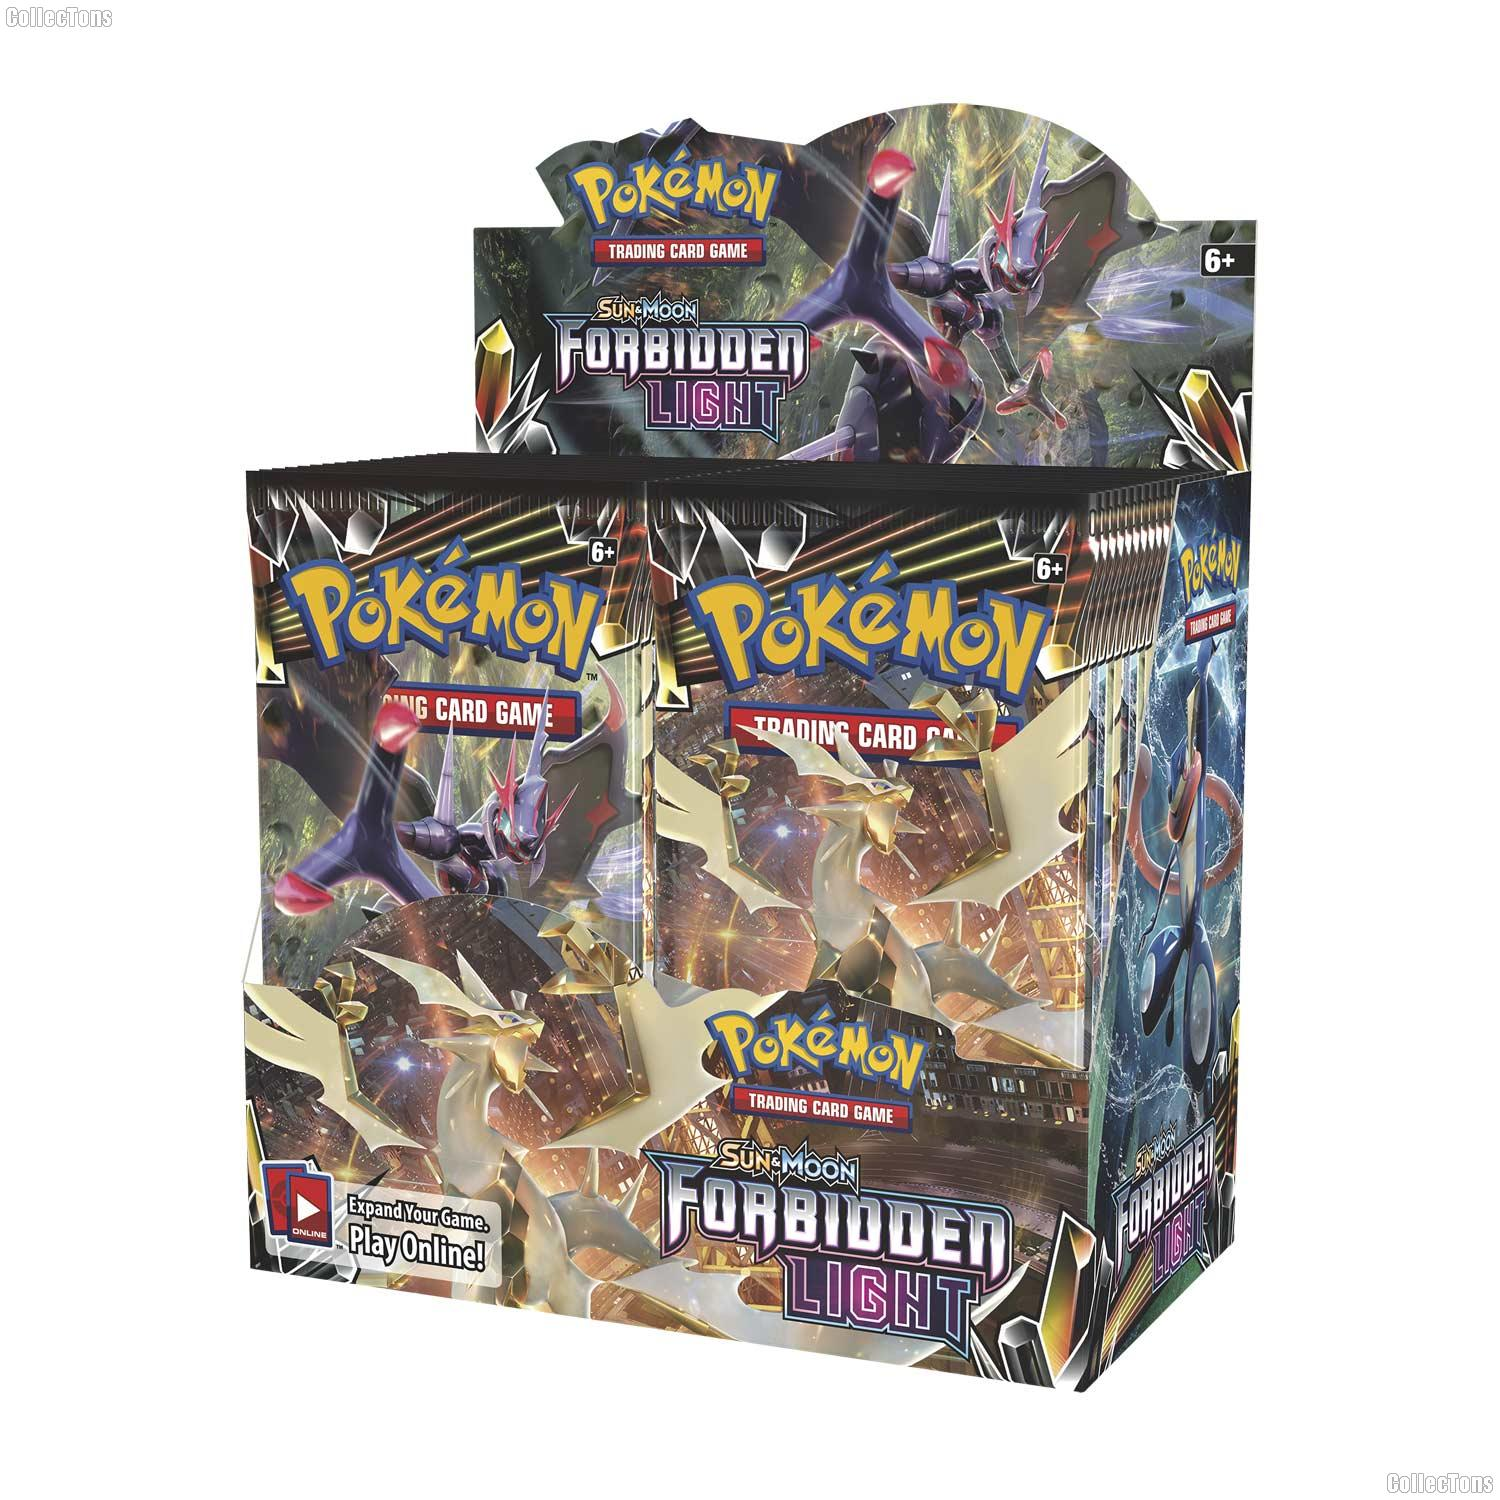 Pokemon - Sun & Moon Forbidden Light Booster Box